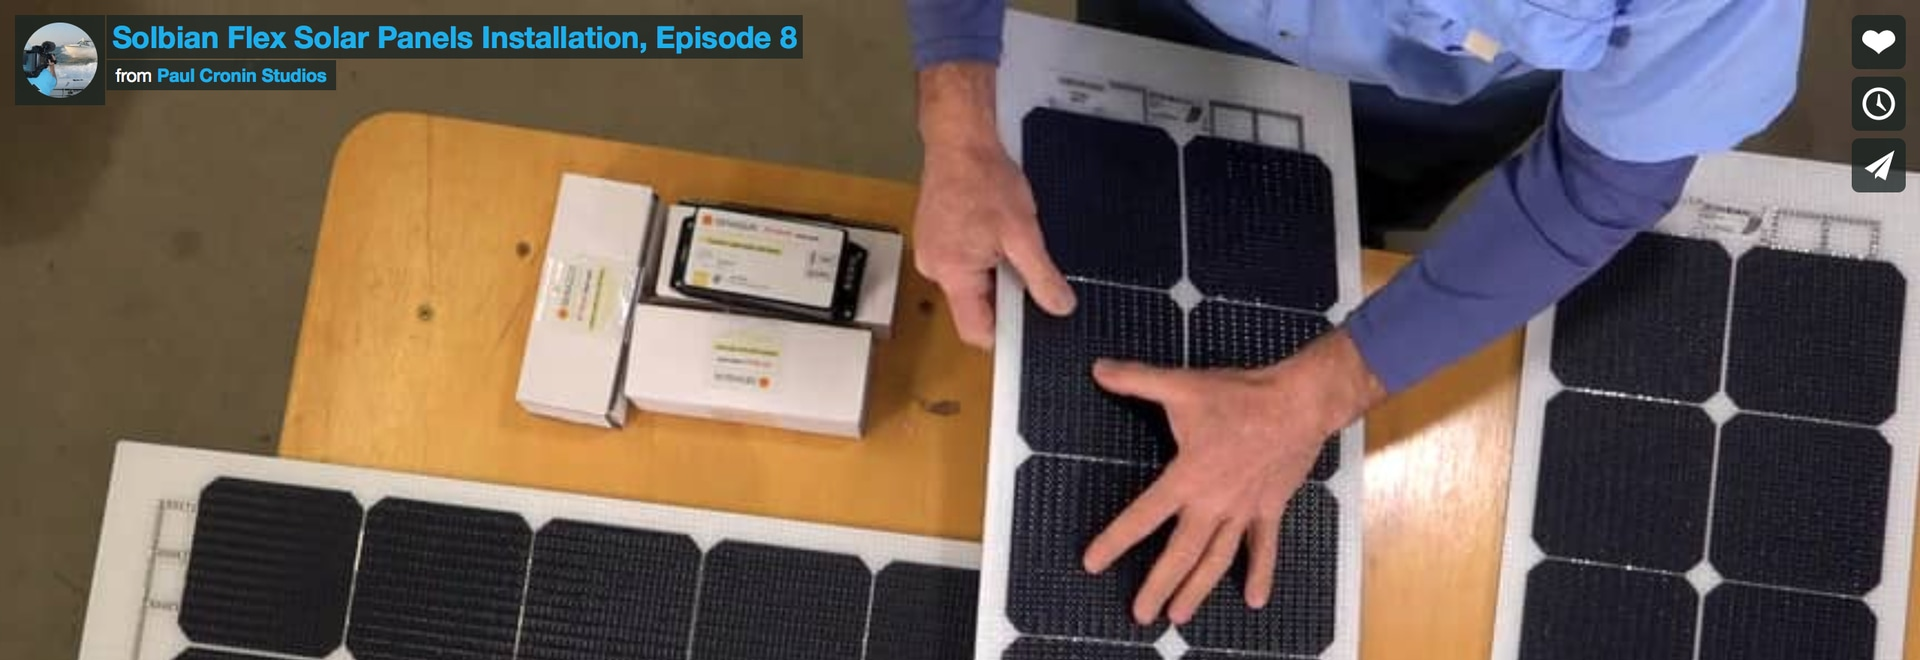 A video tutorial showing how to install Solbian SP panels on a boat